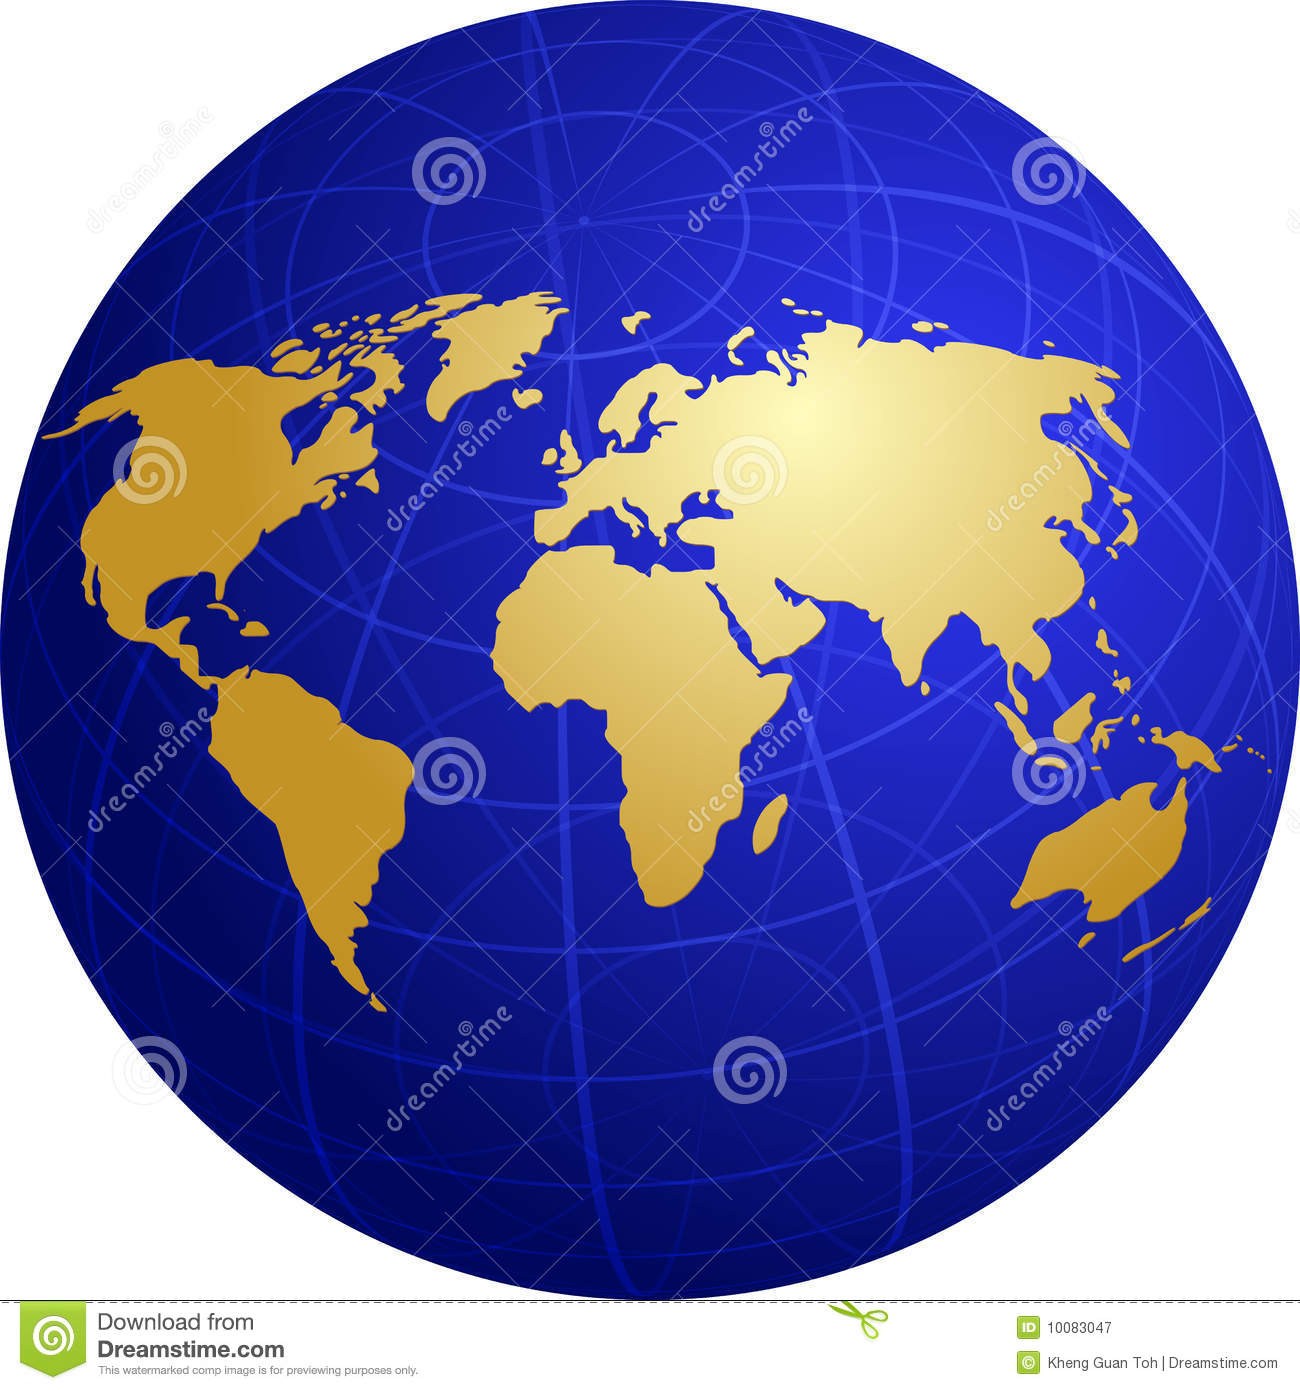 Map Of The World Illustration On Globe Grid Stock Illustration